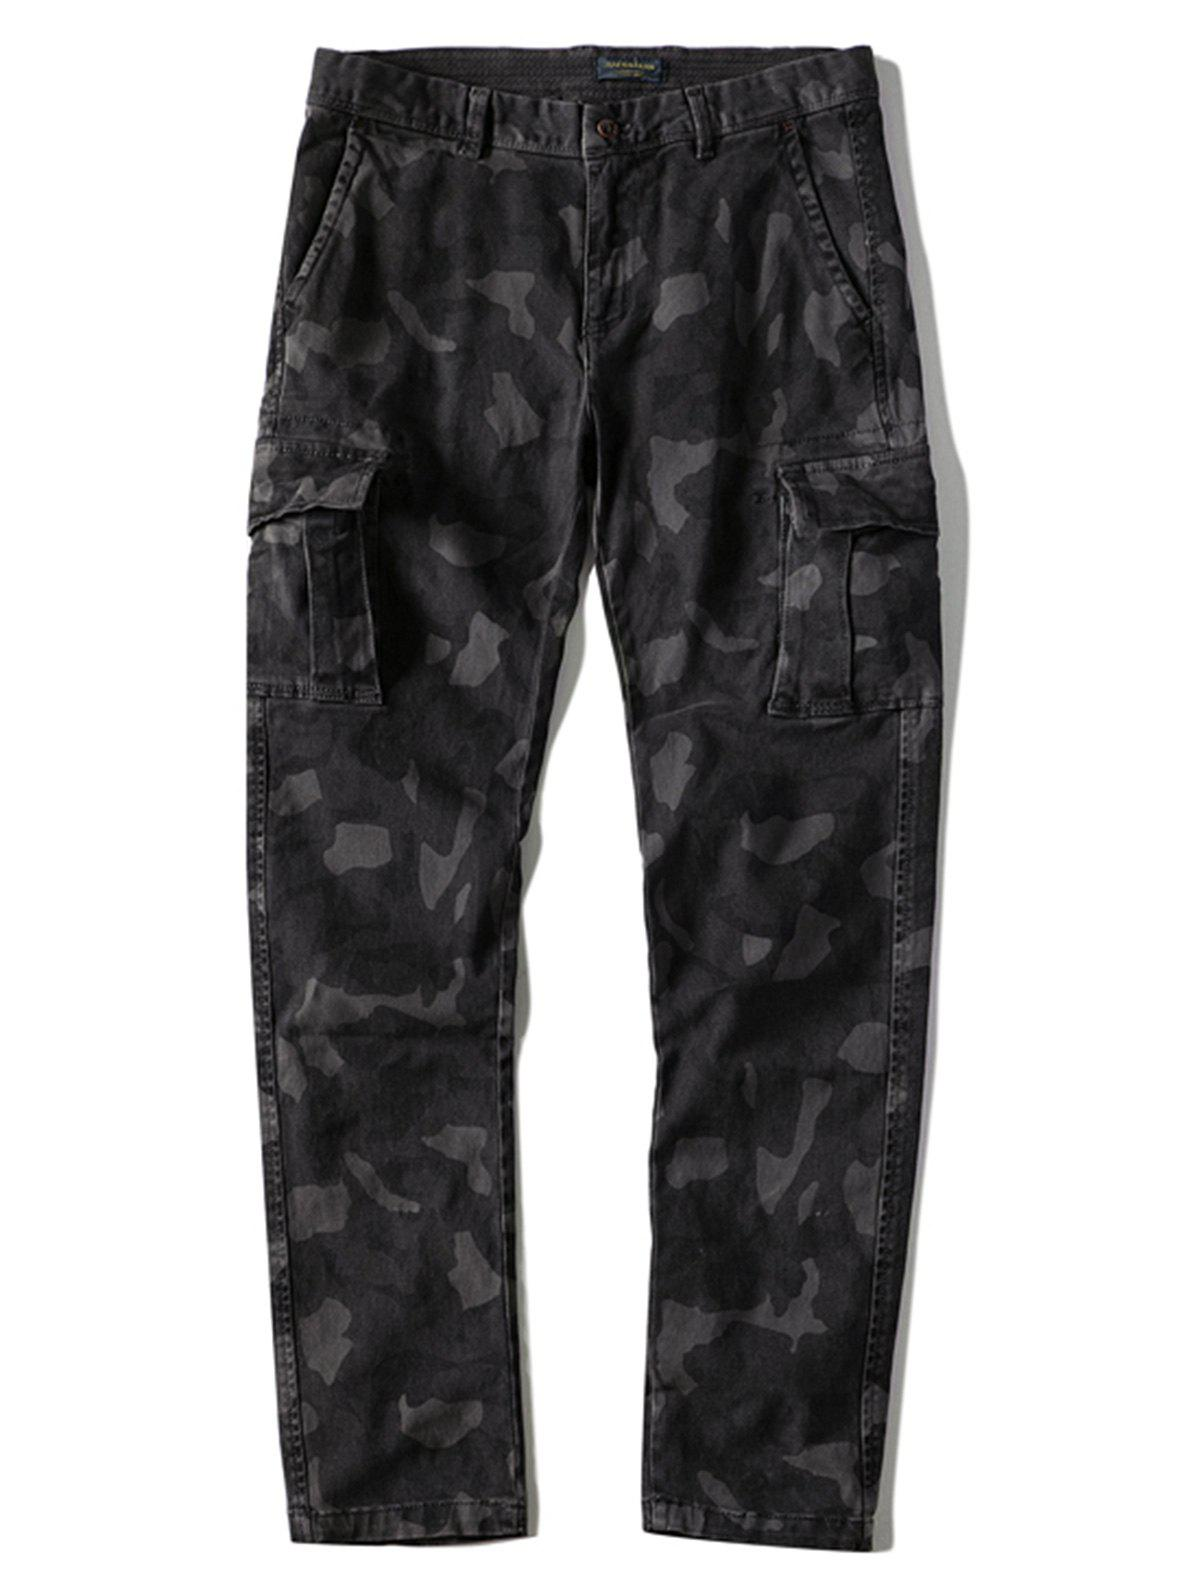 Discount Multi-pocket Slim Fit Camo Cargo Pants